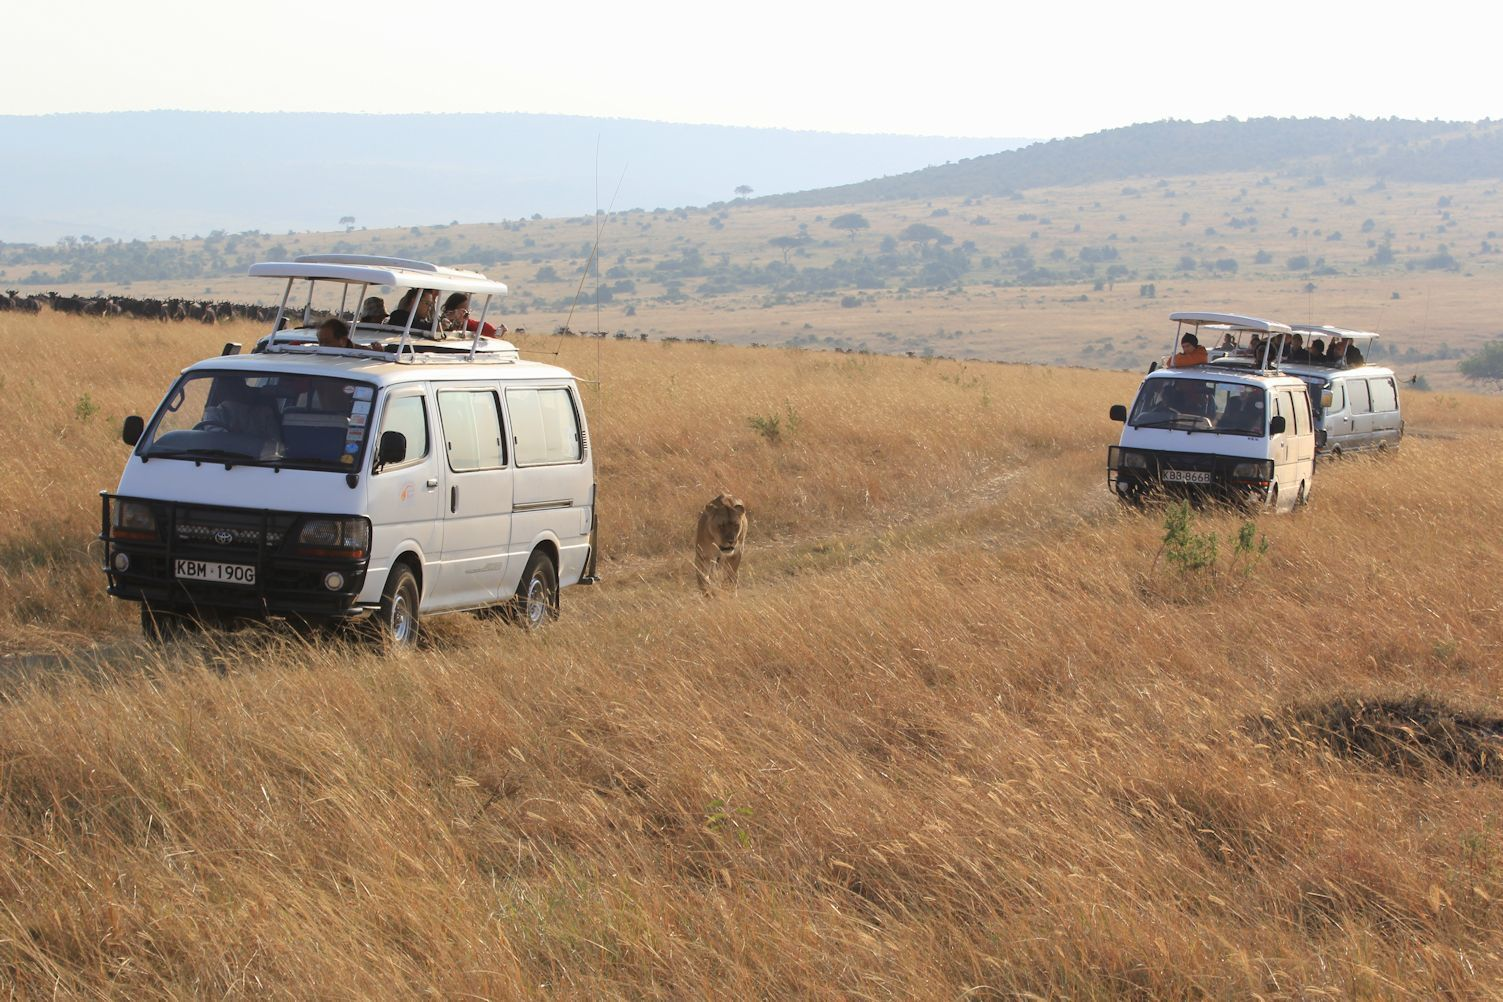 Minibuses follow the lioness